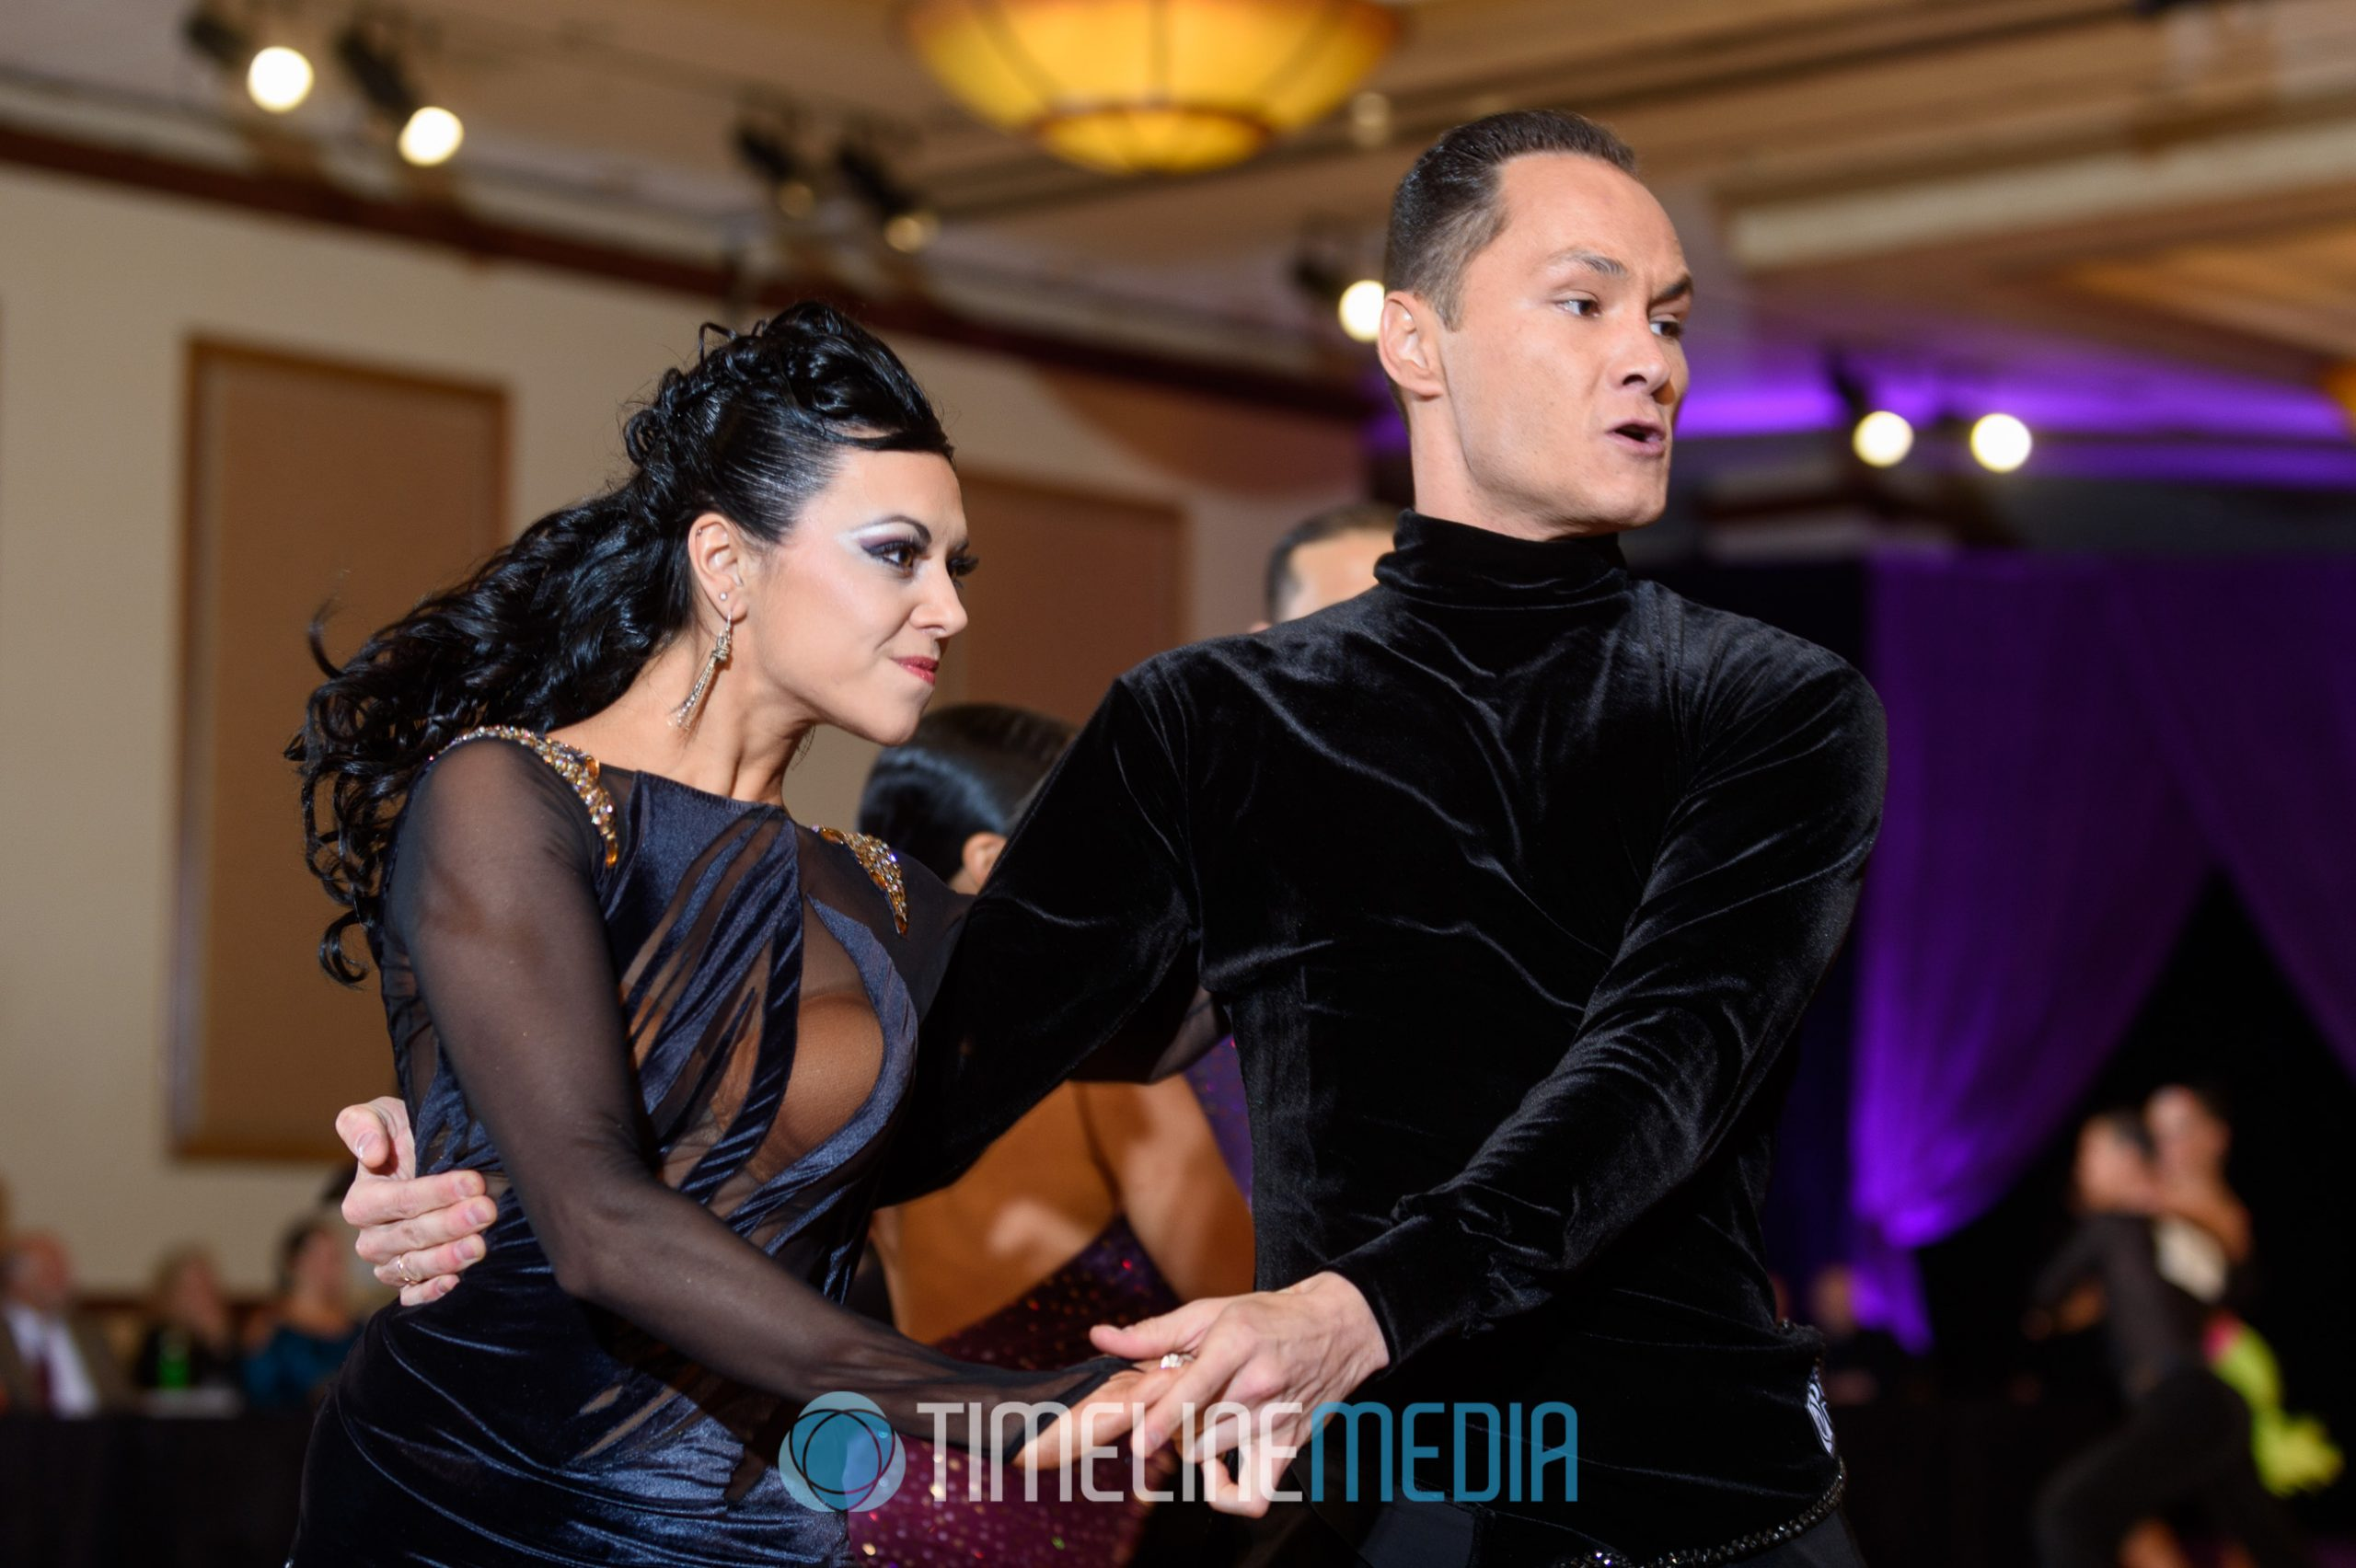 Professional Dance competition New Jersey ©TimeLine Media